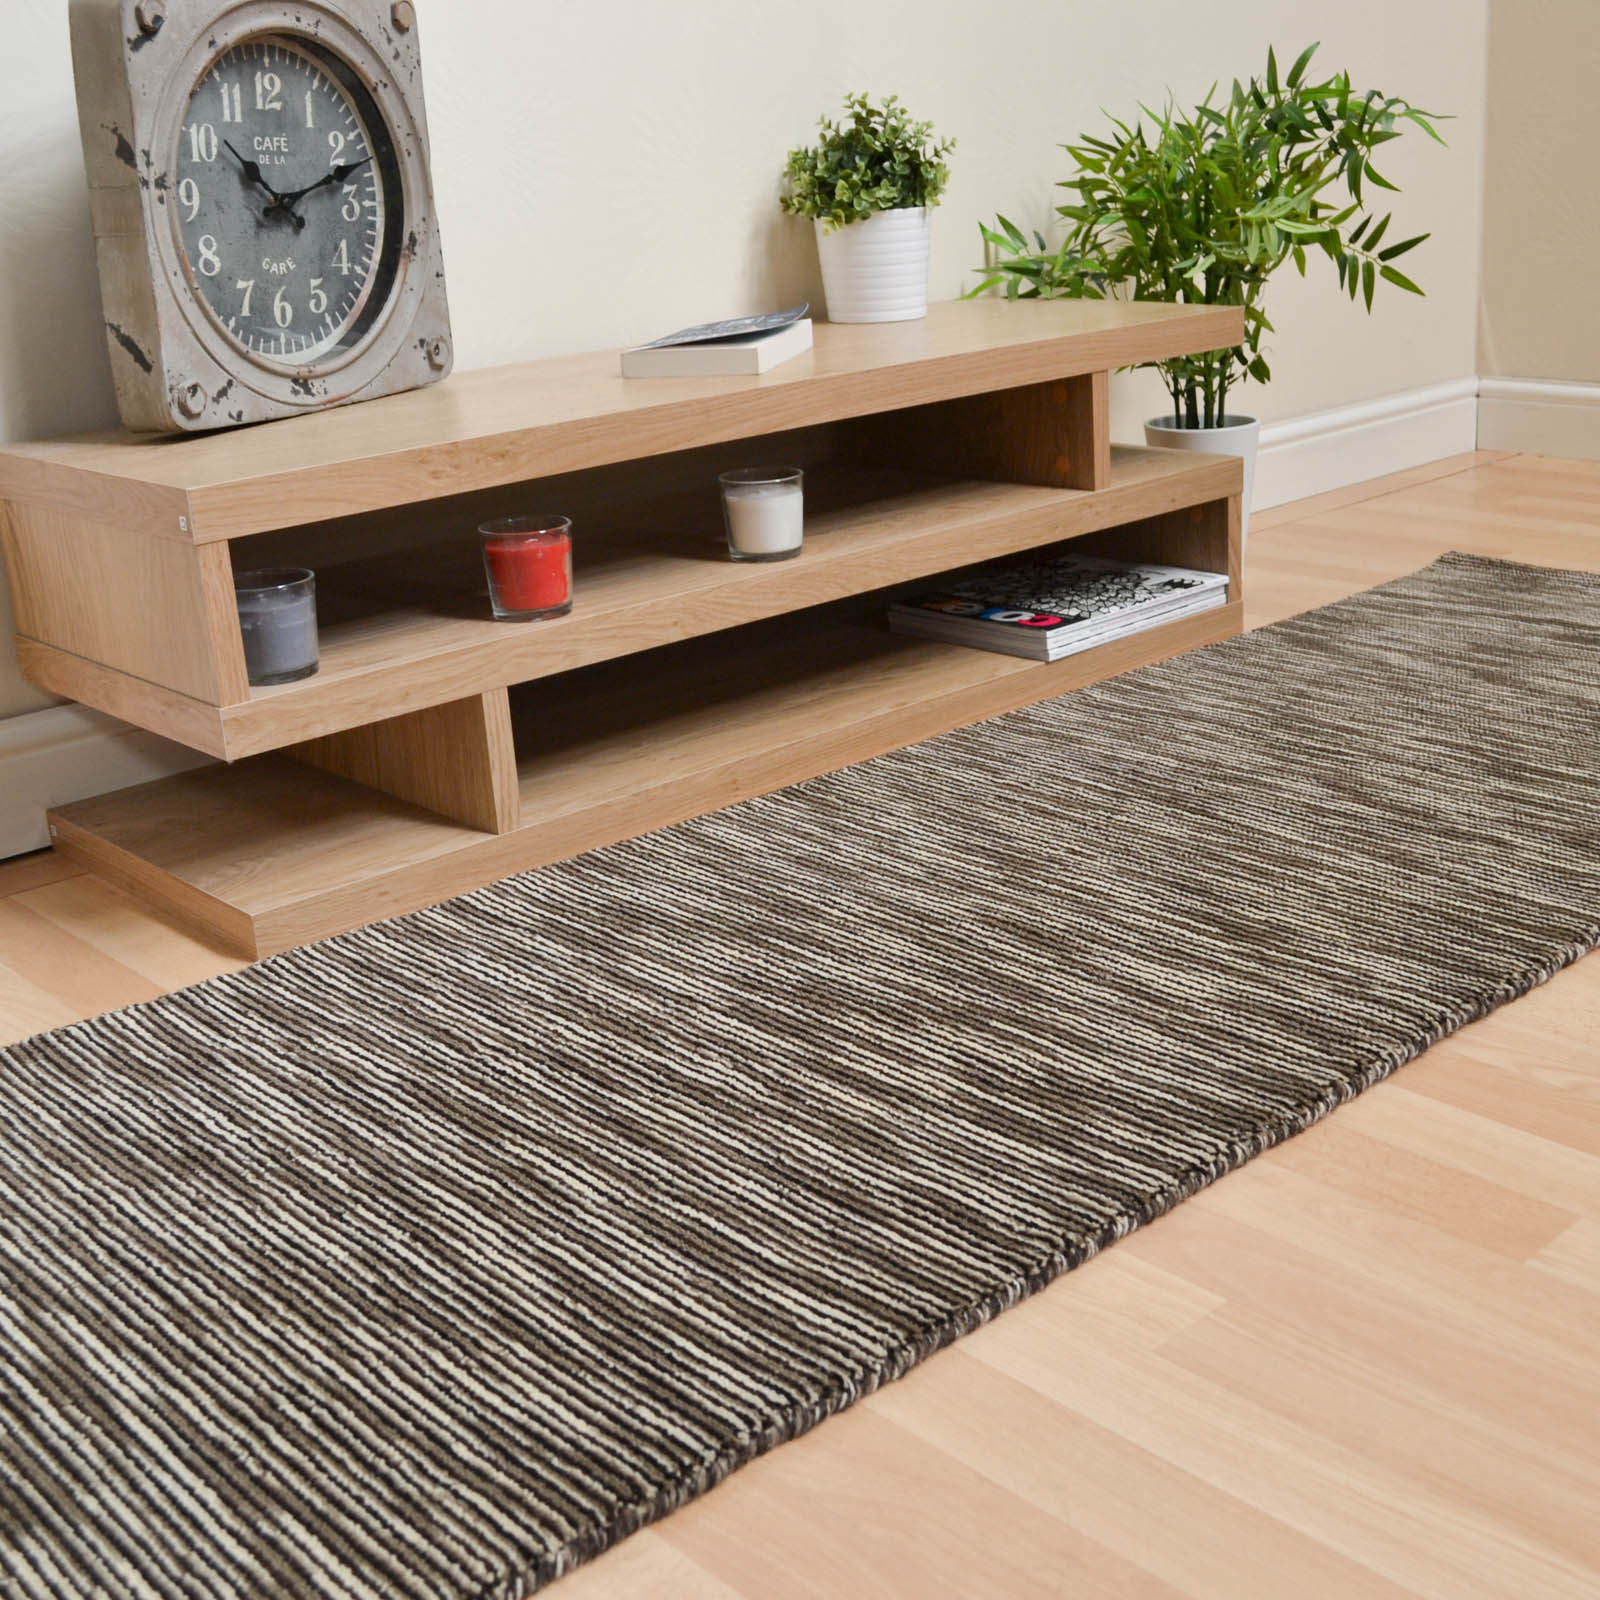 Seasons Loom Knotted Striped Wool Runners SEA05 in Natural